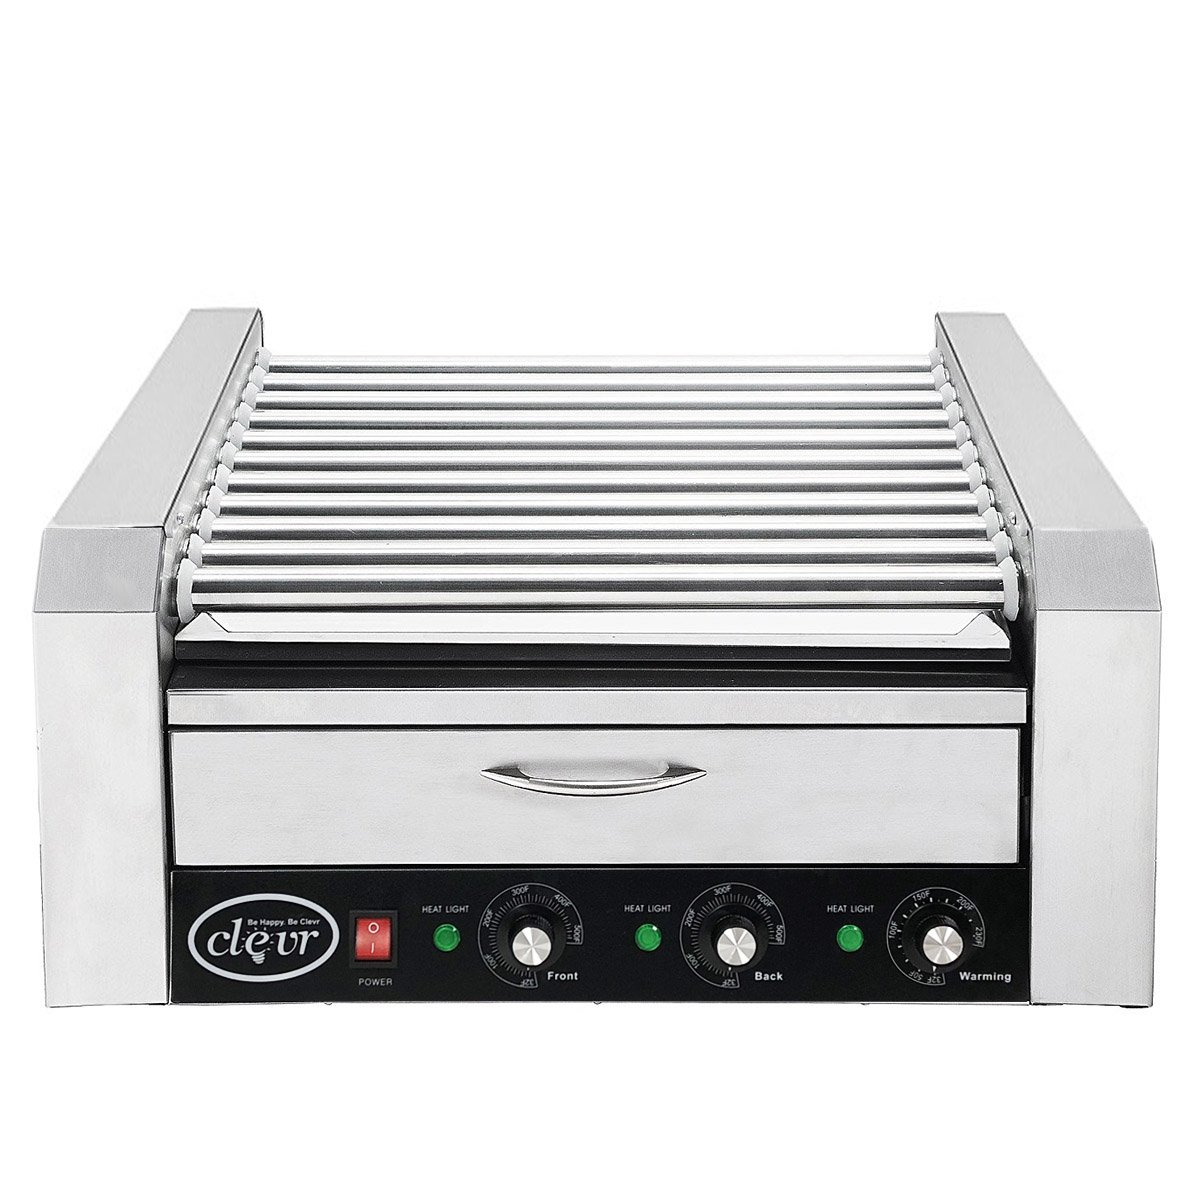 Clevr Commercial 11 Roller and 30 Hotdog Roller Machine, with Bum Warming Drawer, Hot Dog Grill Cooker with Bun Warmer